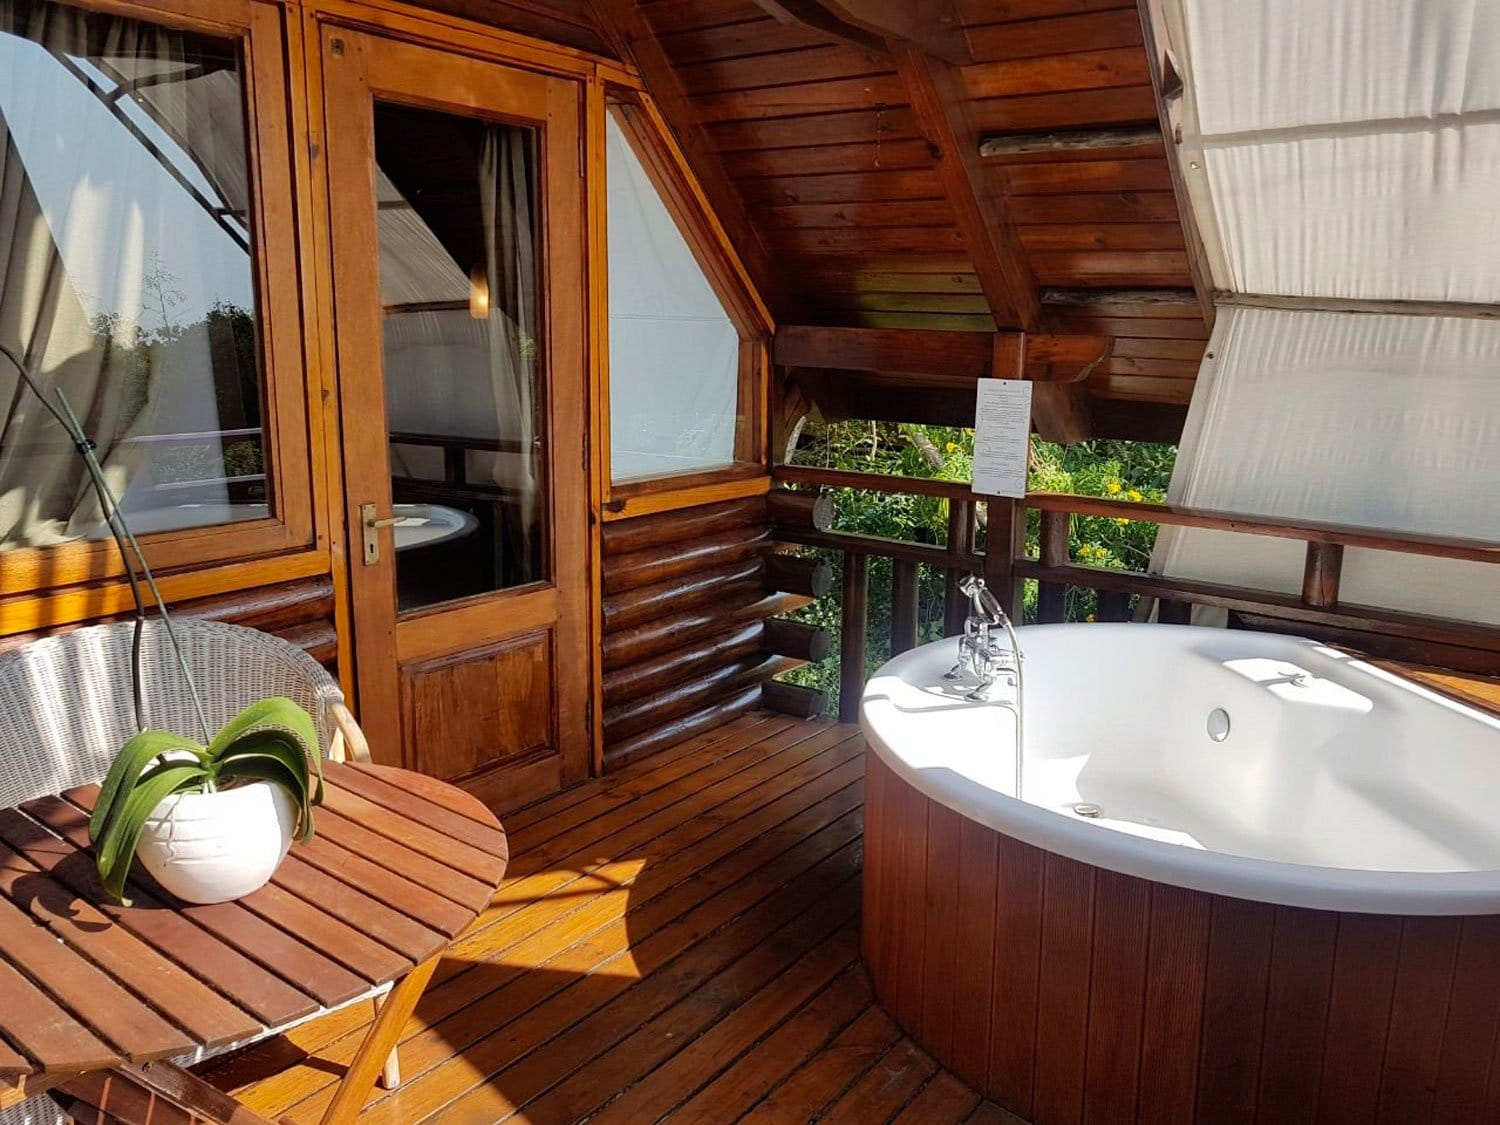 ARTICLE-Reunion Island's regional booking platform welcomes roche Tamarin Lodges & Spa